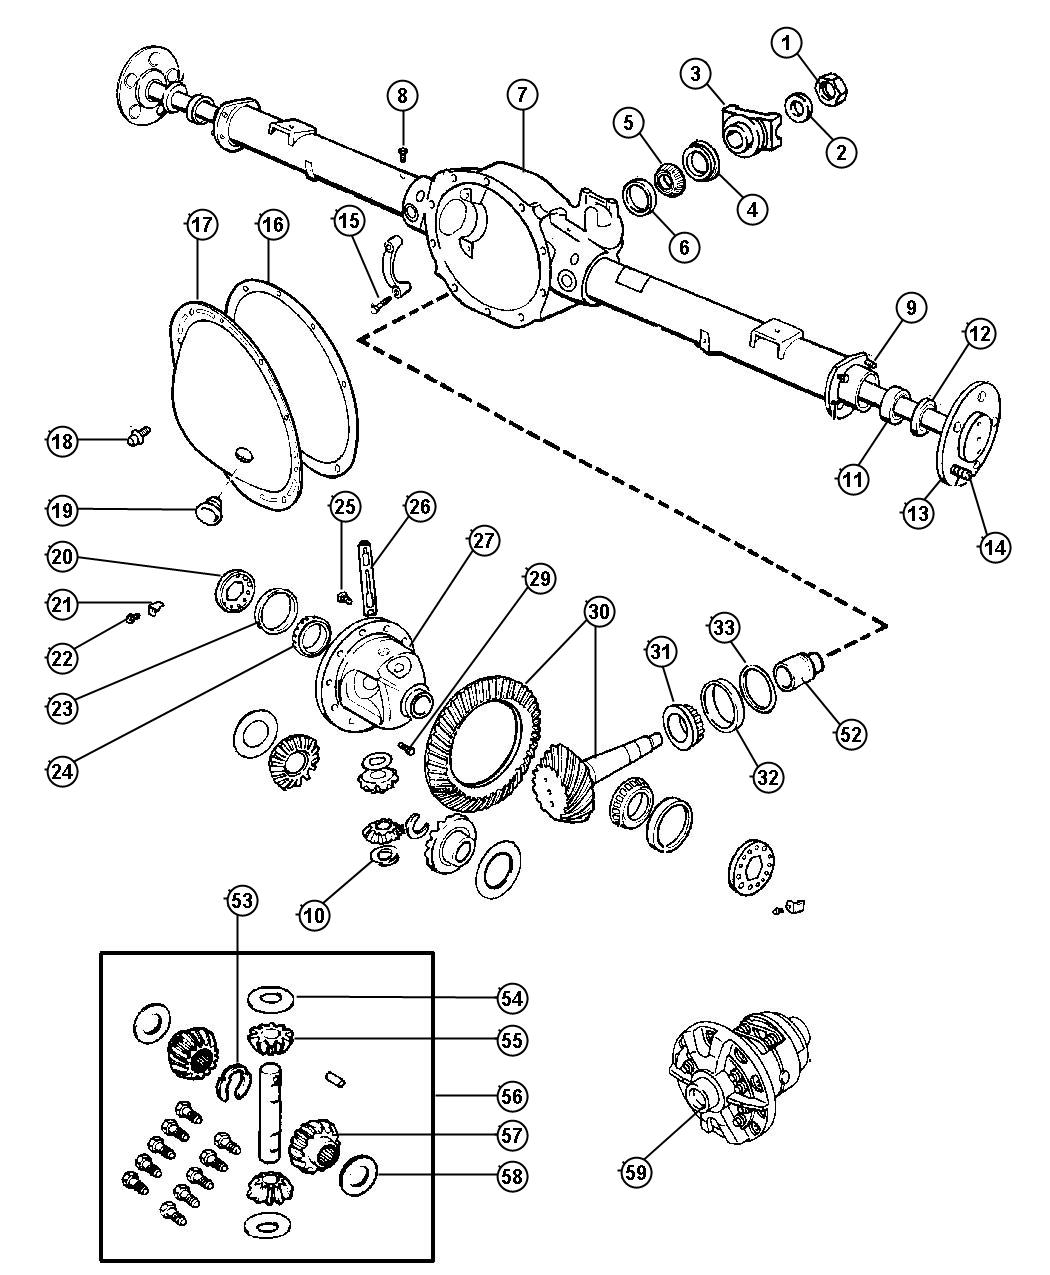 Dodge Dakota Parts Diagram Drivetrain Dodge Auto Wiring